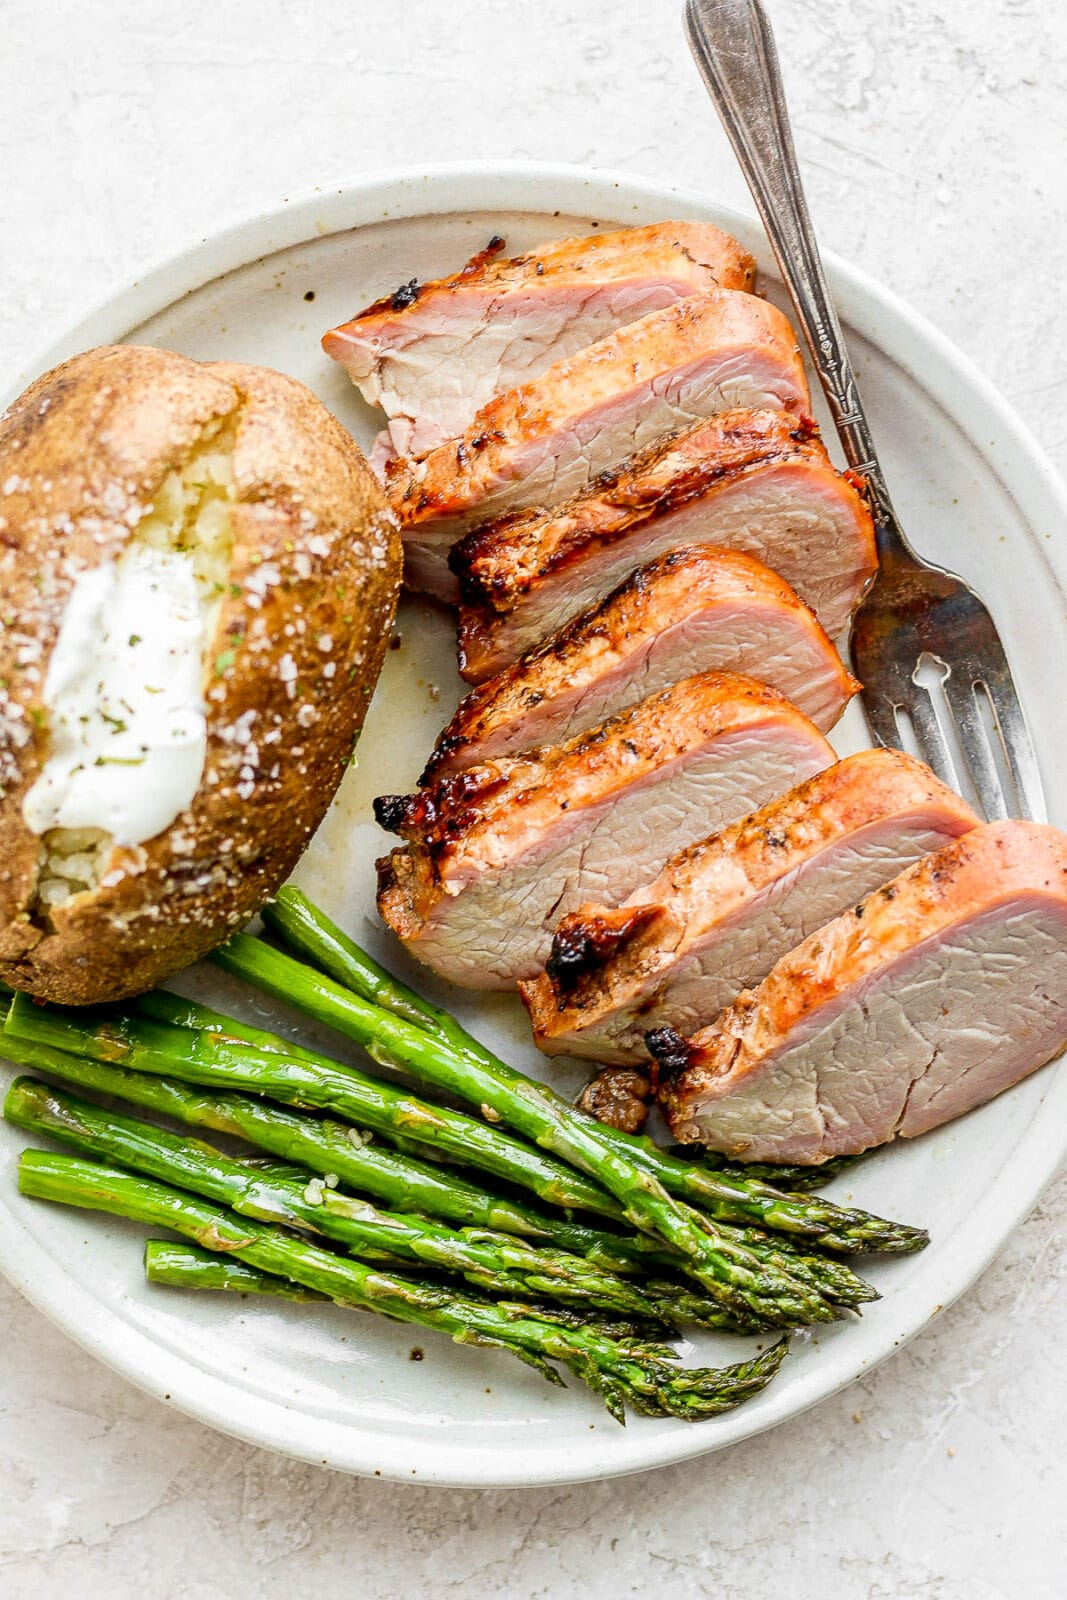 A plate of sliced smoked pork tenderloin with asparagus and a baked potato.